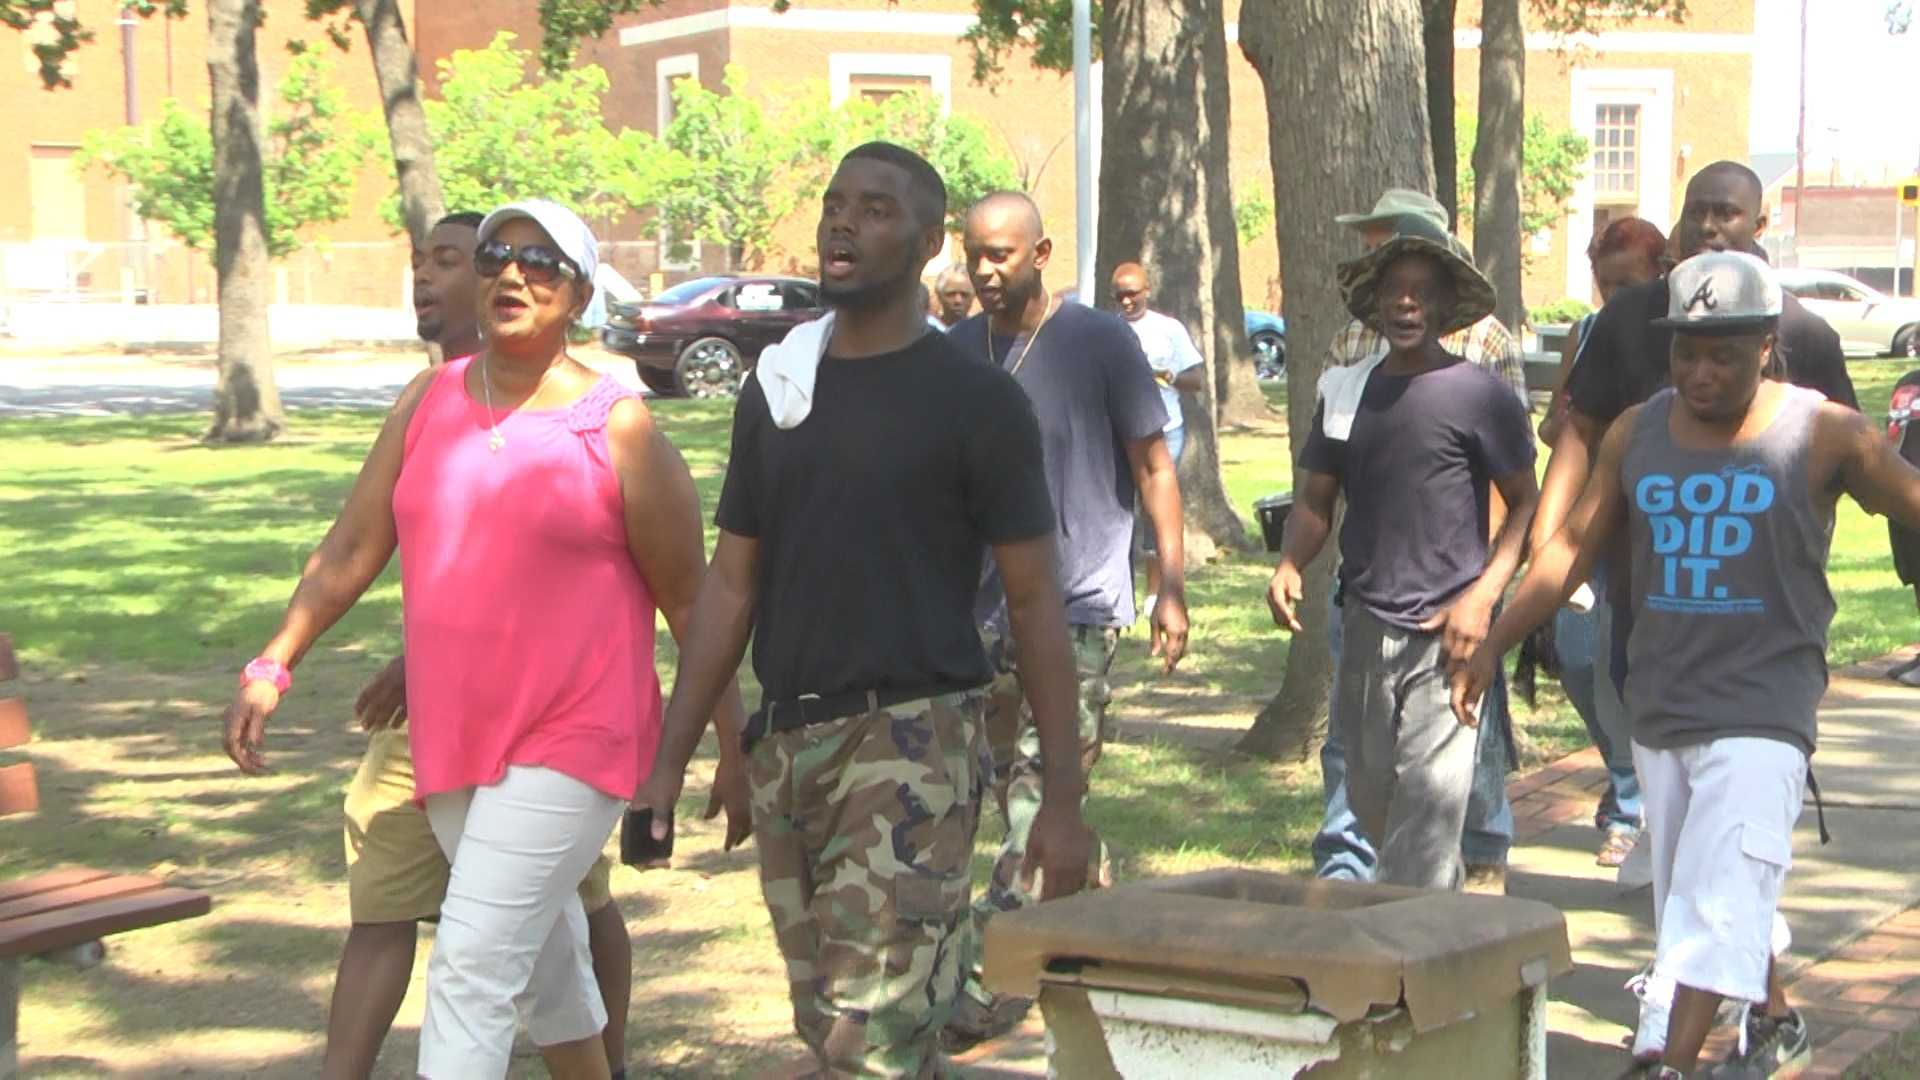 A march to stop the violence is underway in downtown Bessemer to discuss ways to deal with conflicts.